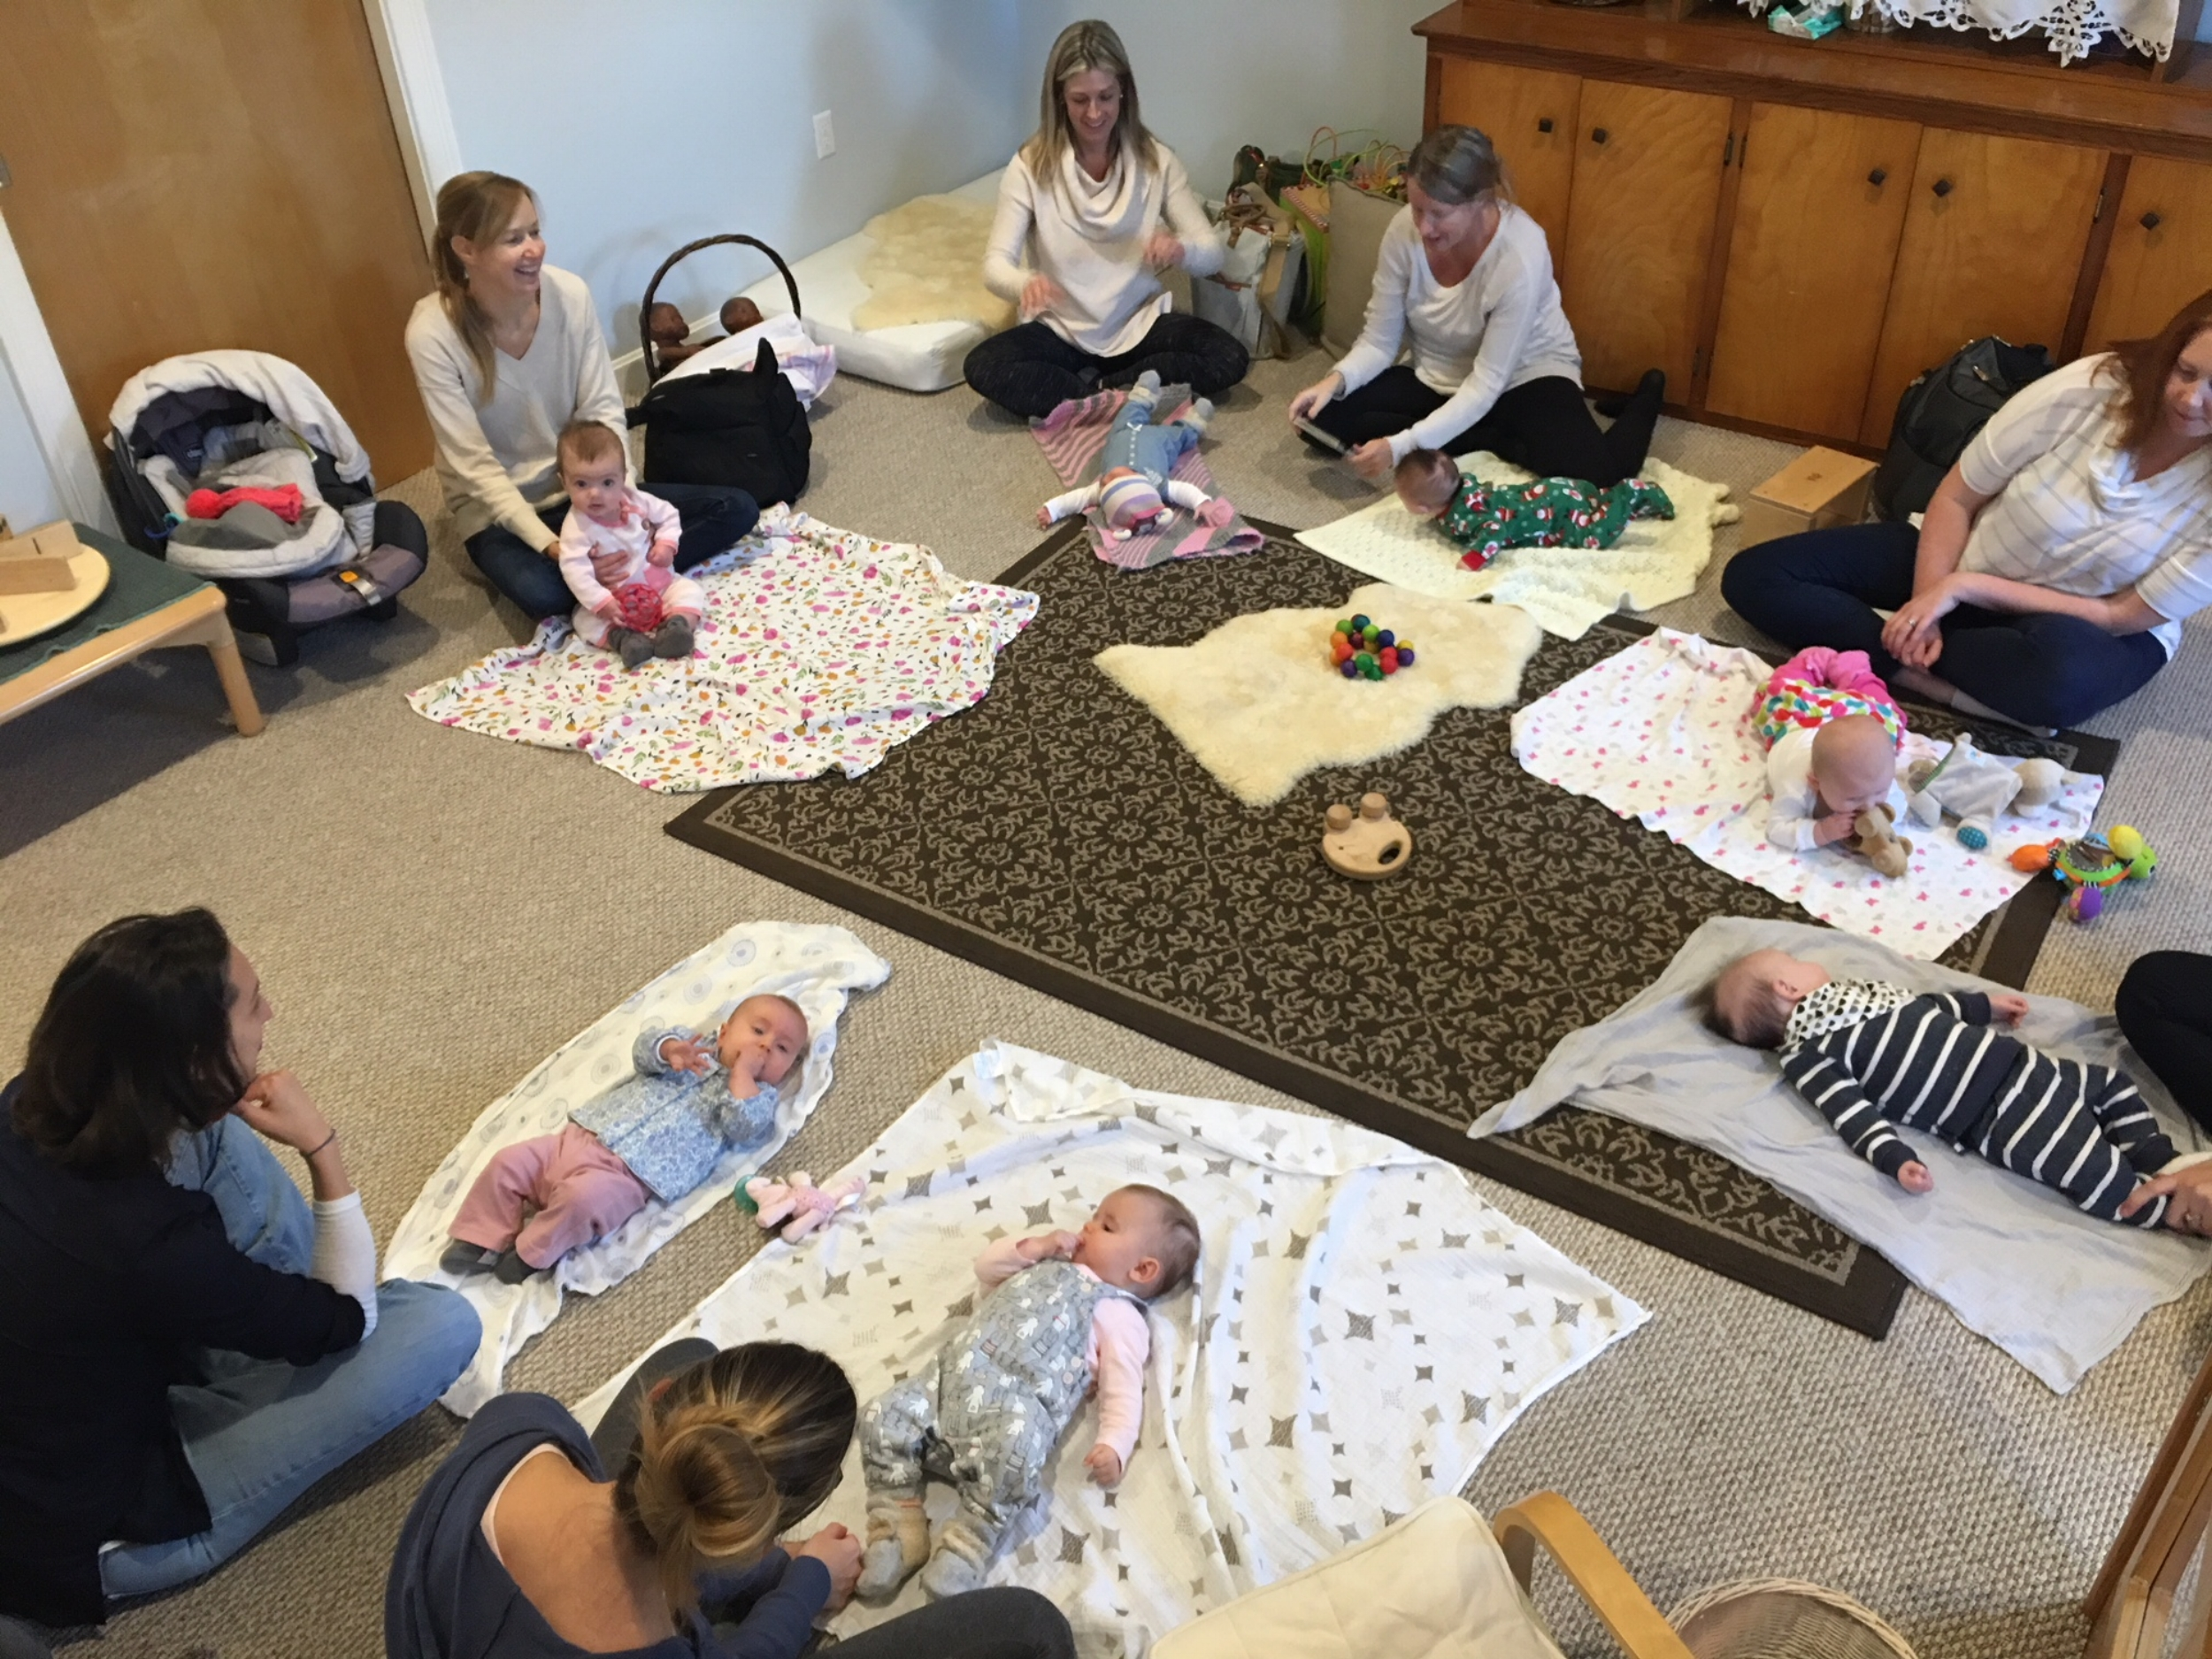 BIRTH - 12 MONTHS: BABY PLAYTIME - As your baby explores our ever-shifting sensory materials curated just for infants, meet other moms and discuss the early days of parenting. This FREE class is co-sponsored by Greater Newburyport Mothers & Families Club. Drop-in. Mondays10:45am-Noon